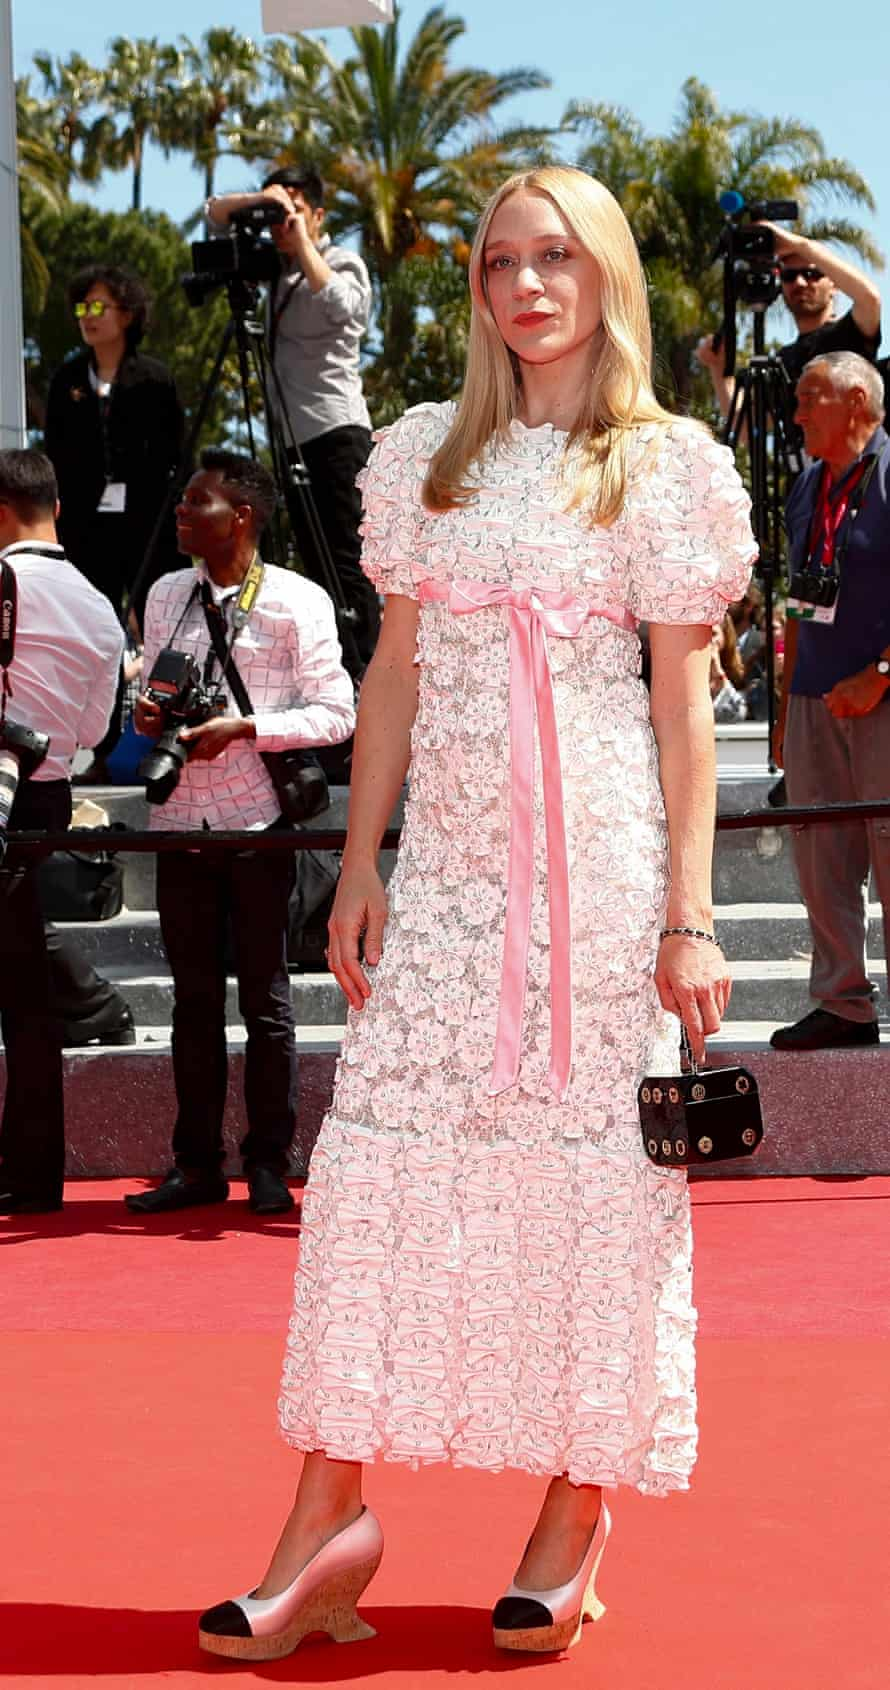 So organised, so confident ... Chloë Sevigny and bag at Cannes.